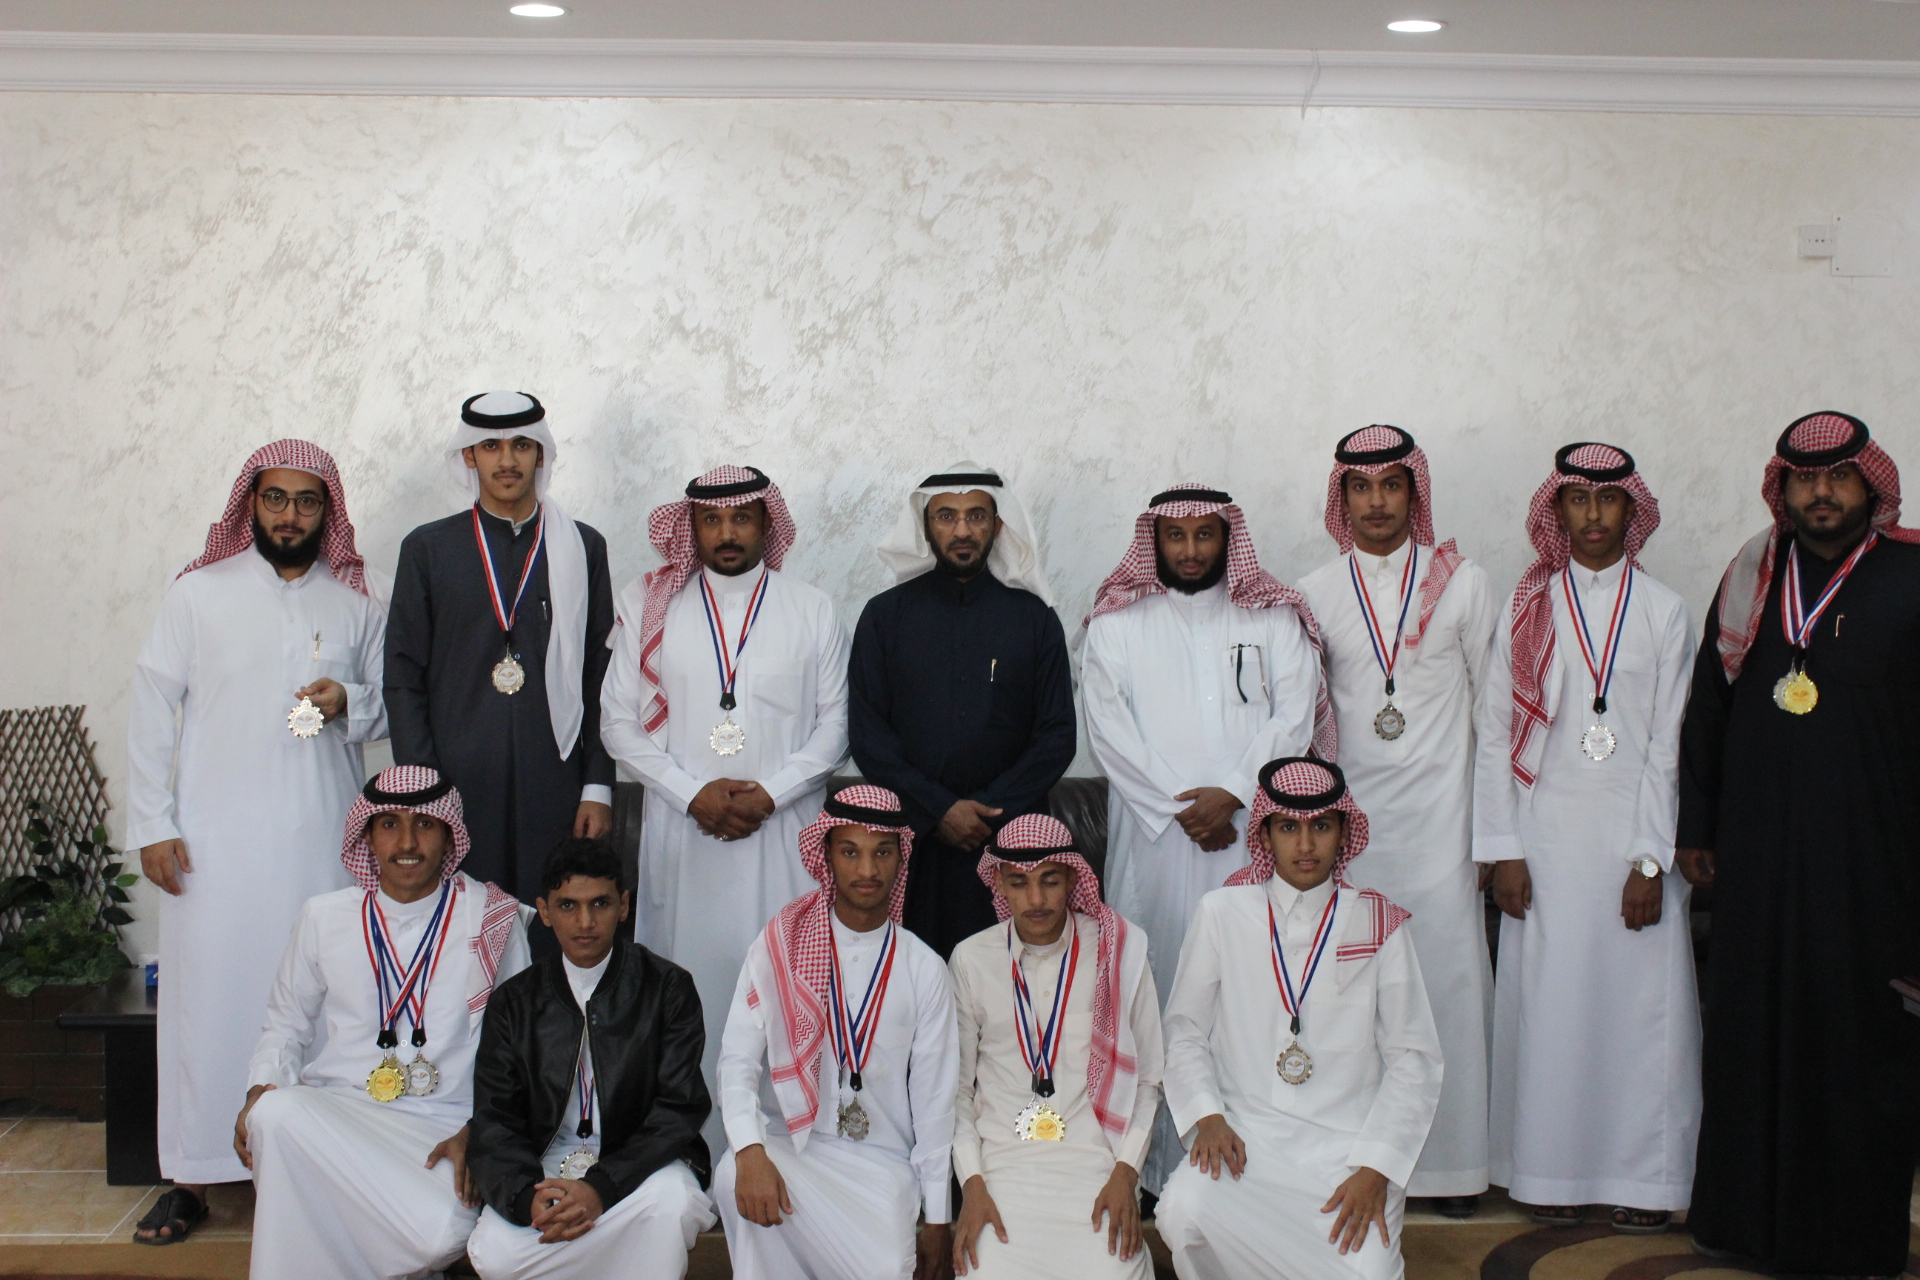 The Community College of al-Kharj wins 3rd place in the University Athletics Championship.